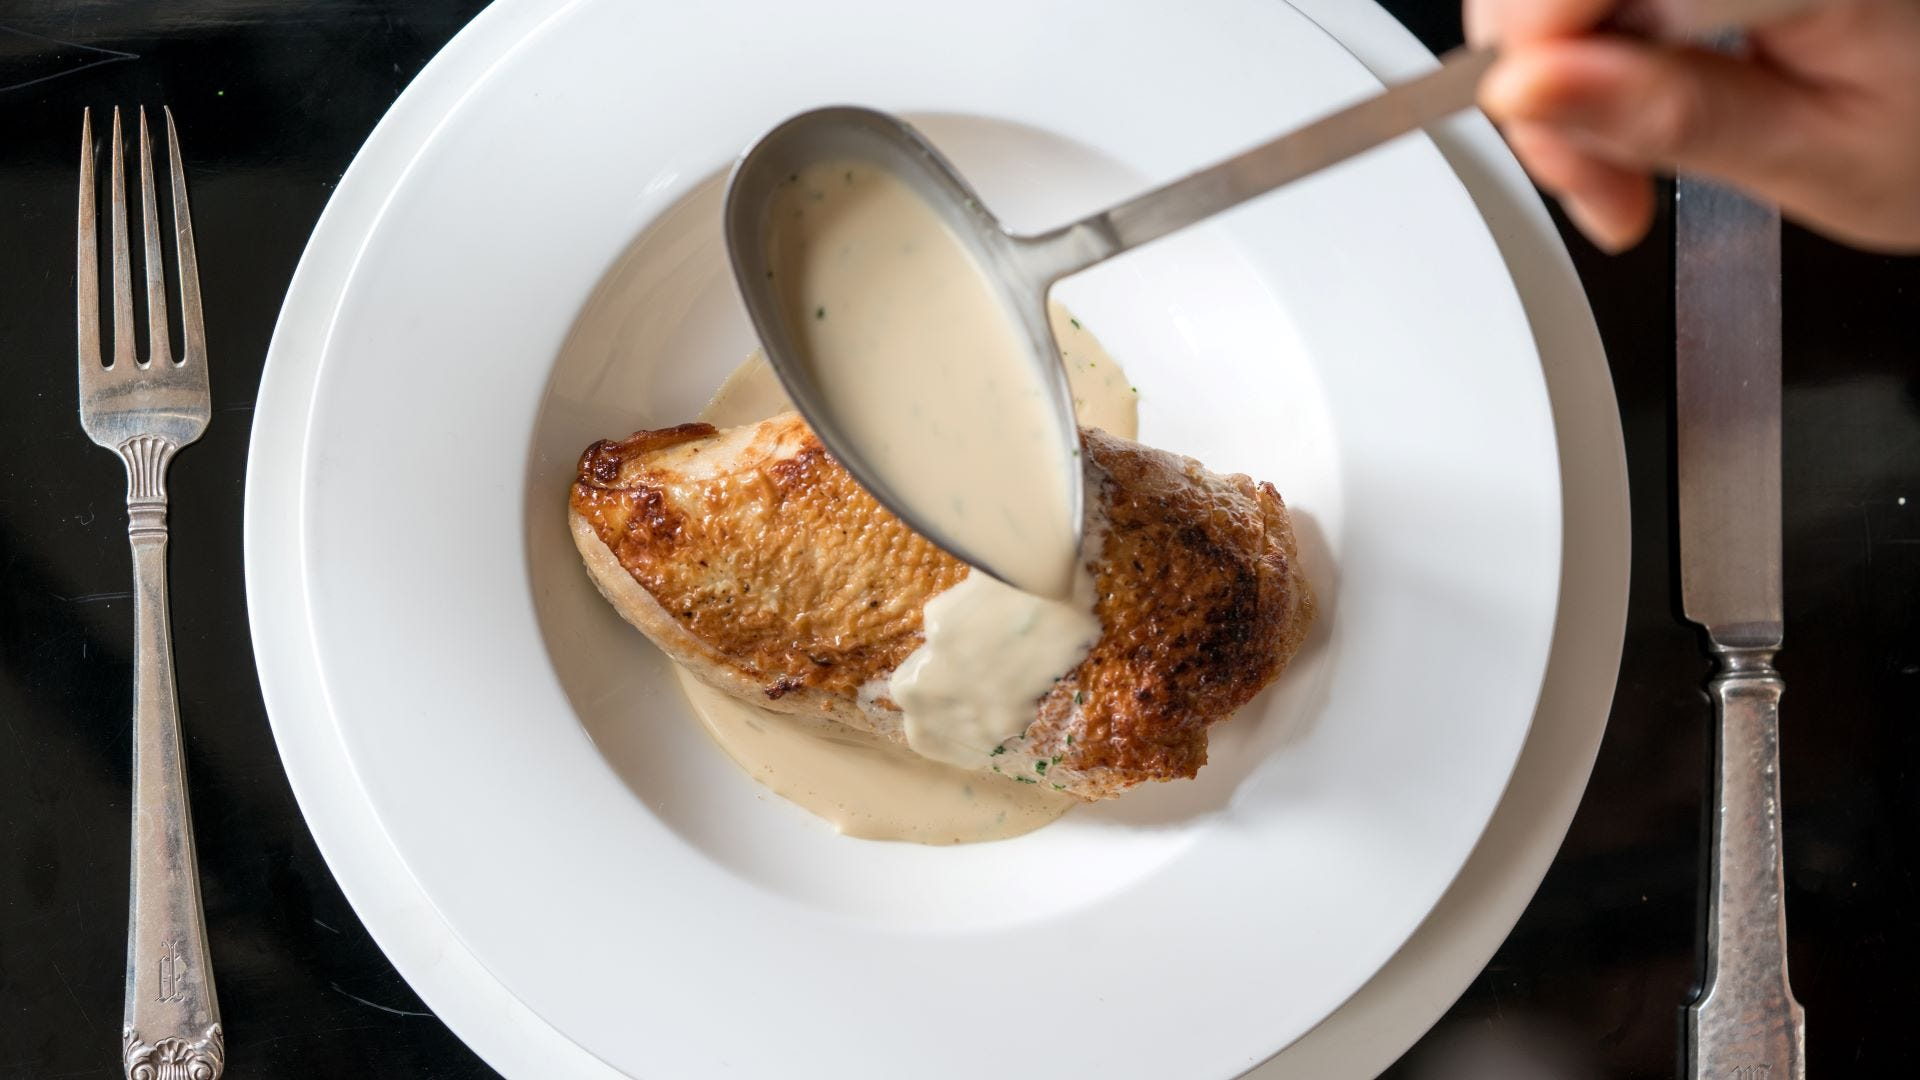 Someone ladling a veloute sauce over a chicken breast.